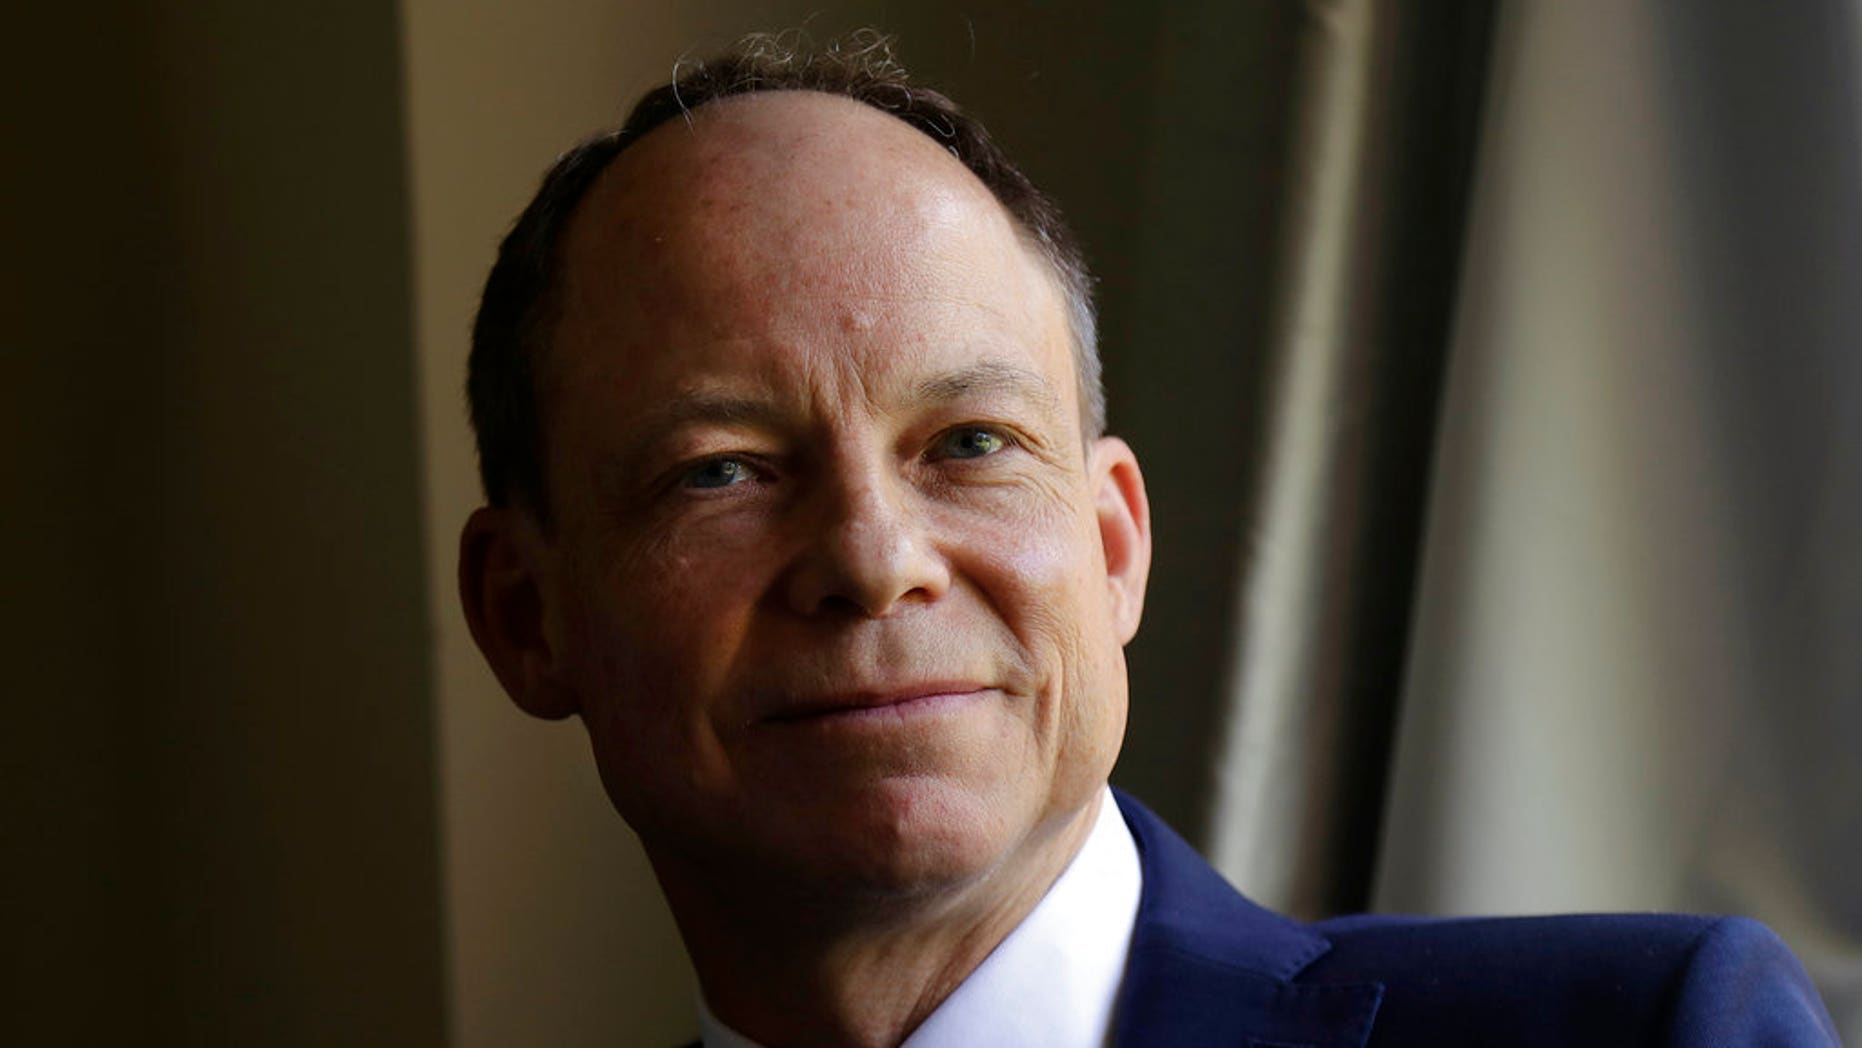 Judge Aaron Persky, who sentenced Brock Turner to six months in jail after he was convicted of sex crimes, was recalled by voters in California. He is the first judge to be recalled in more than 80 years.